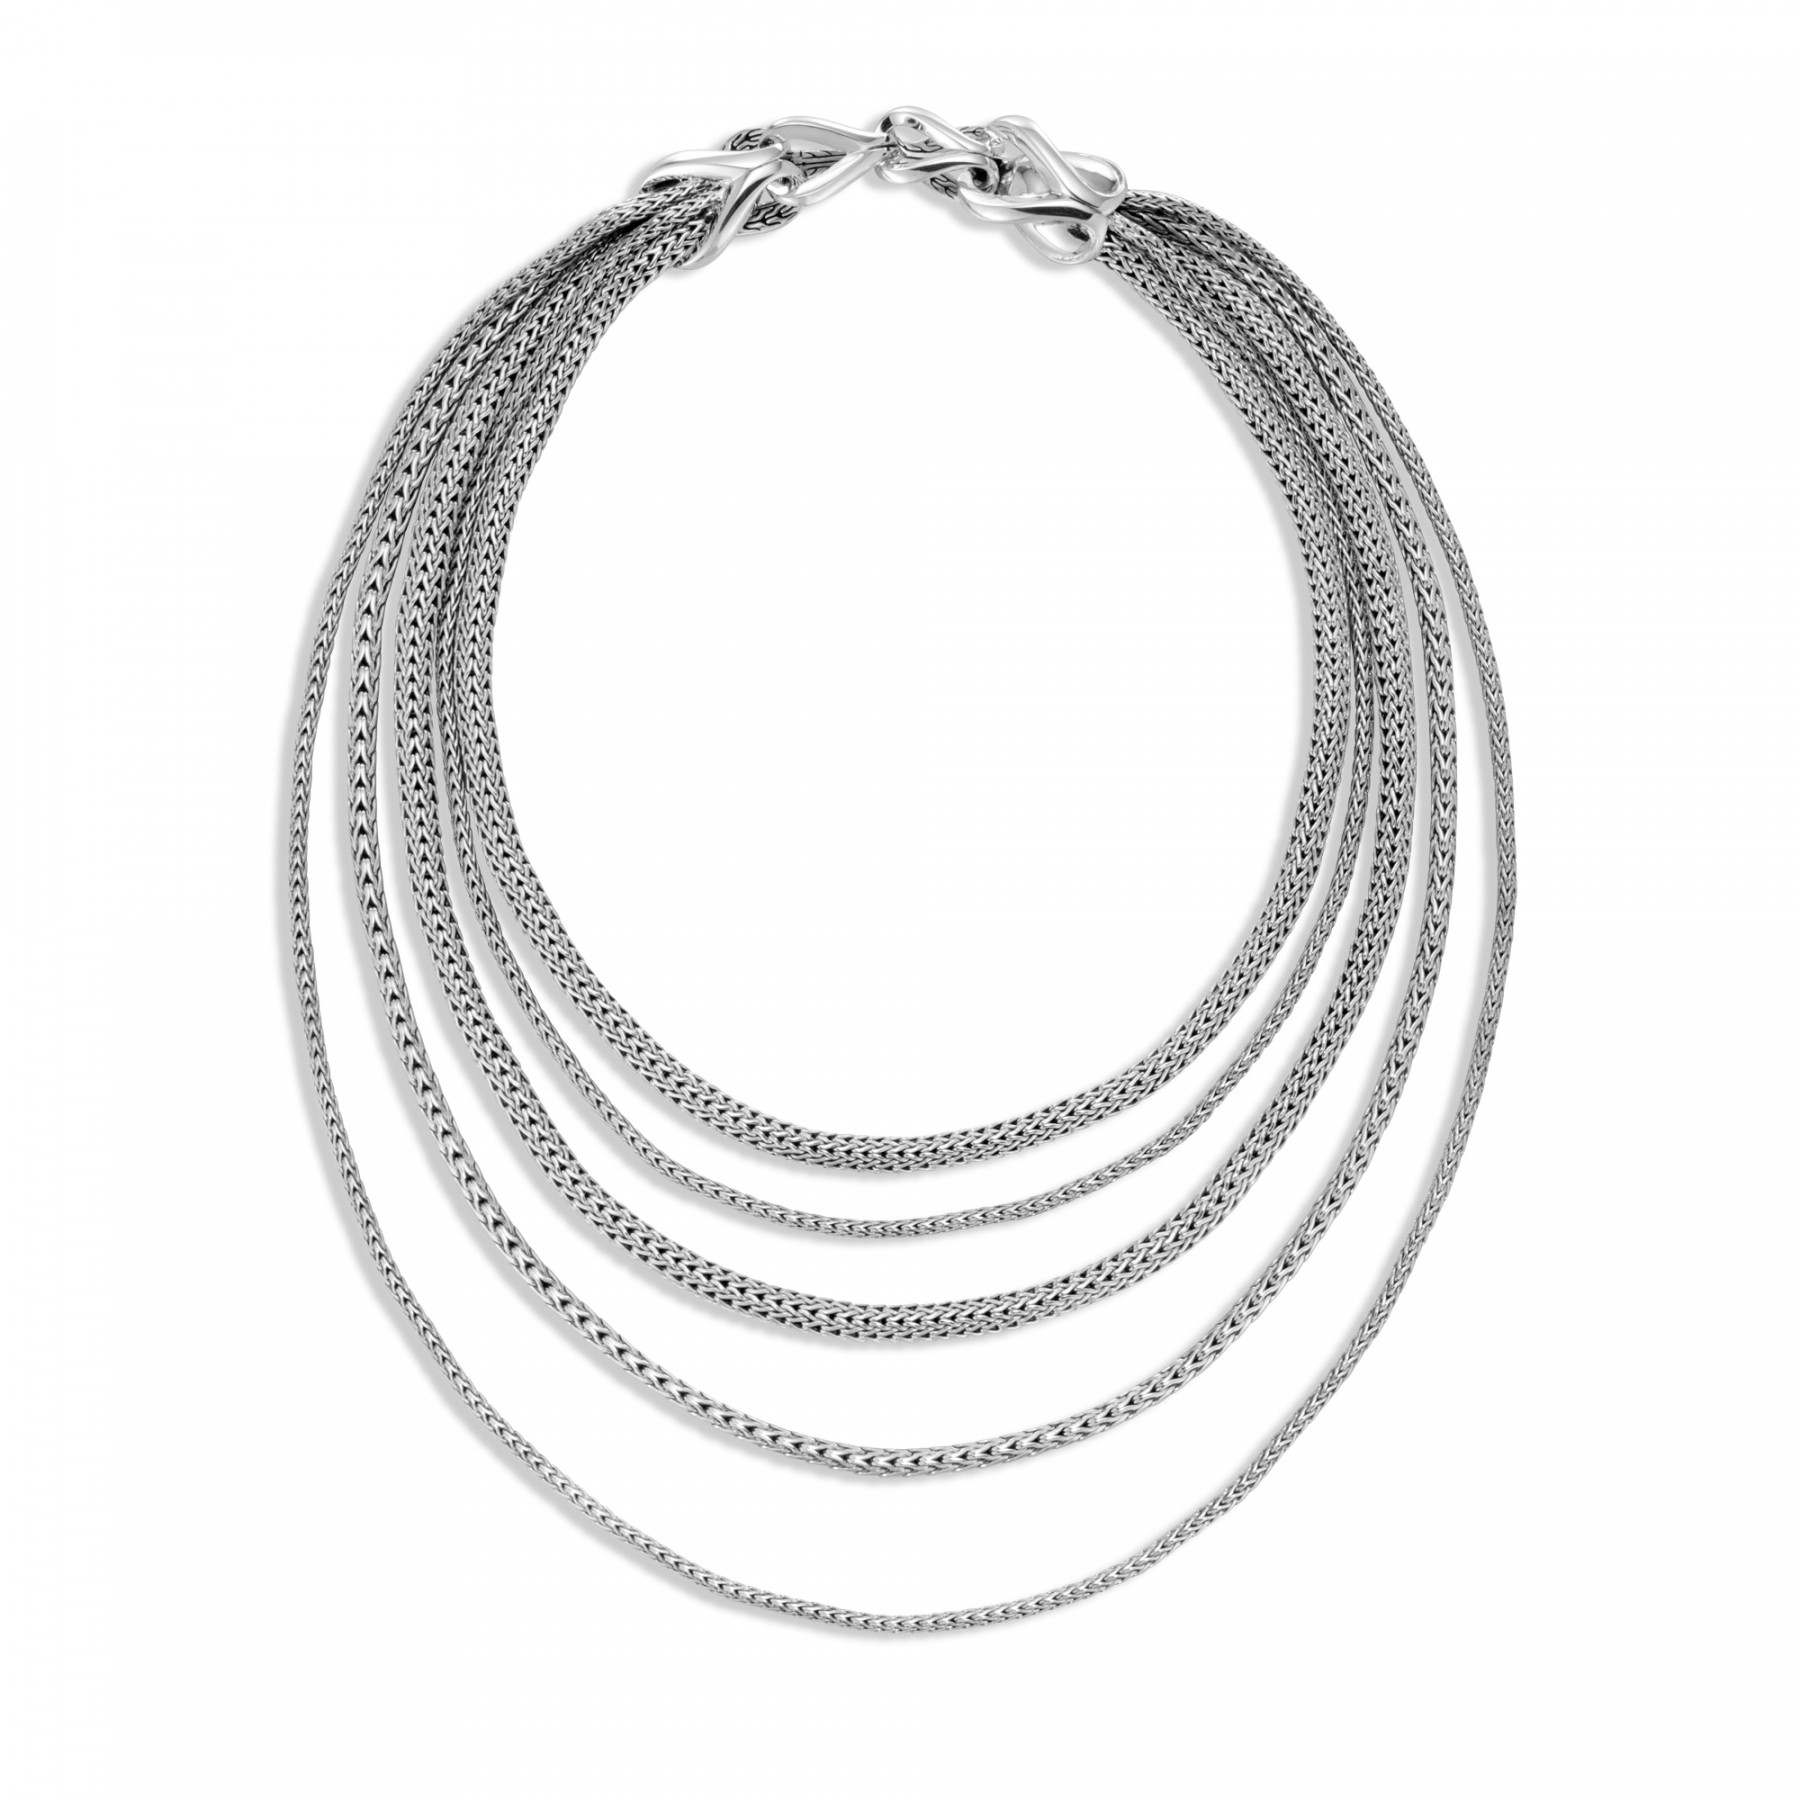 John Hardy Classic Chain Asli Sterling Silver Five Row Bib Necklace